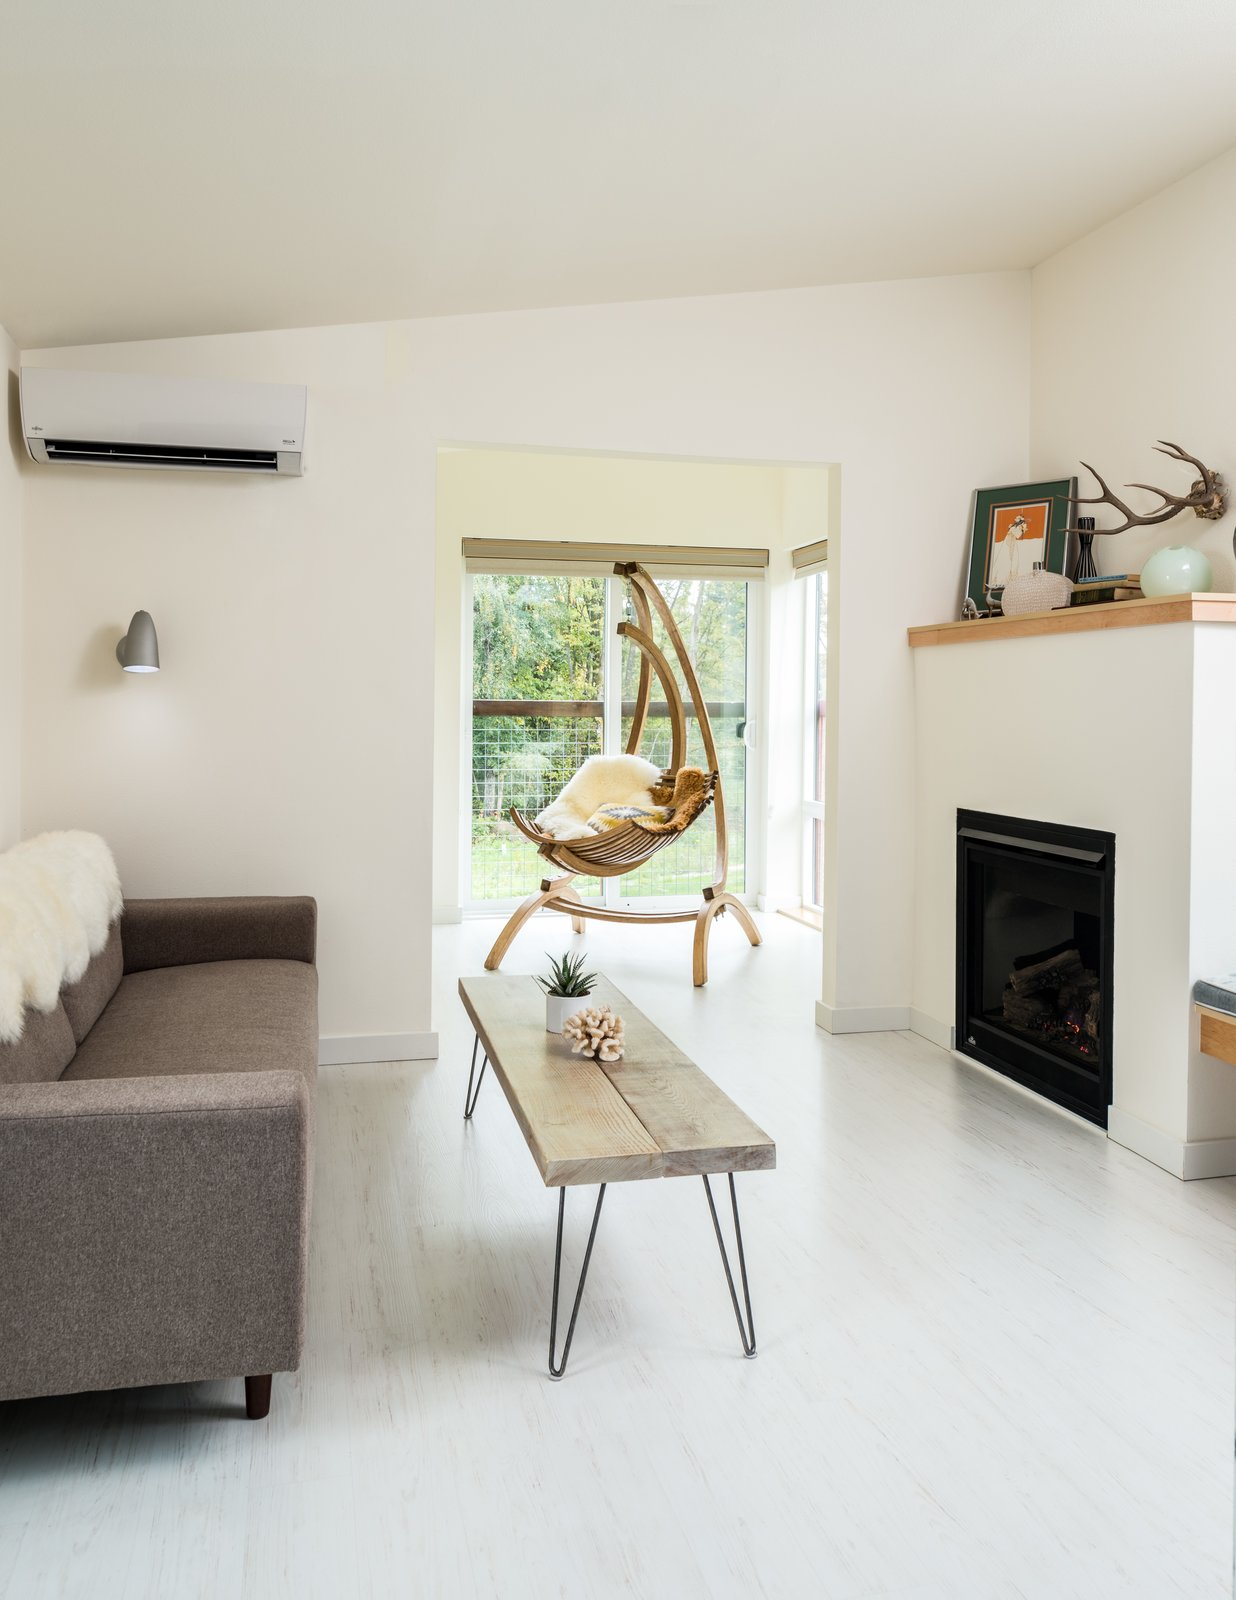 Living Room, Sofa, Coffee Tables, Light Hardwood Floor, Chair, Gas Burning Fireplace, and Wall Lighting A lodge with two seating areas.  Photo 3 of 7 in Serenity Awaits at These Prefab Cabin Rentals on Vashon Island